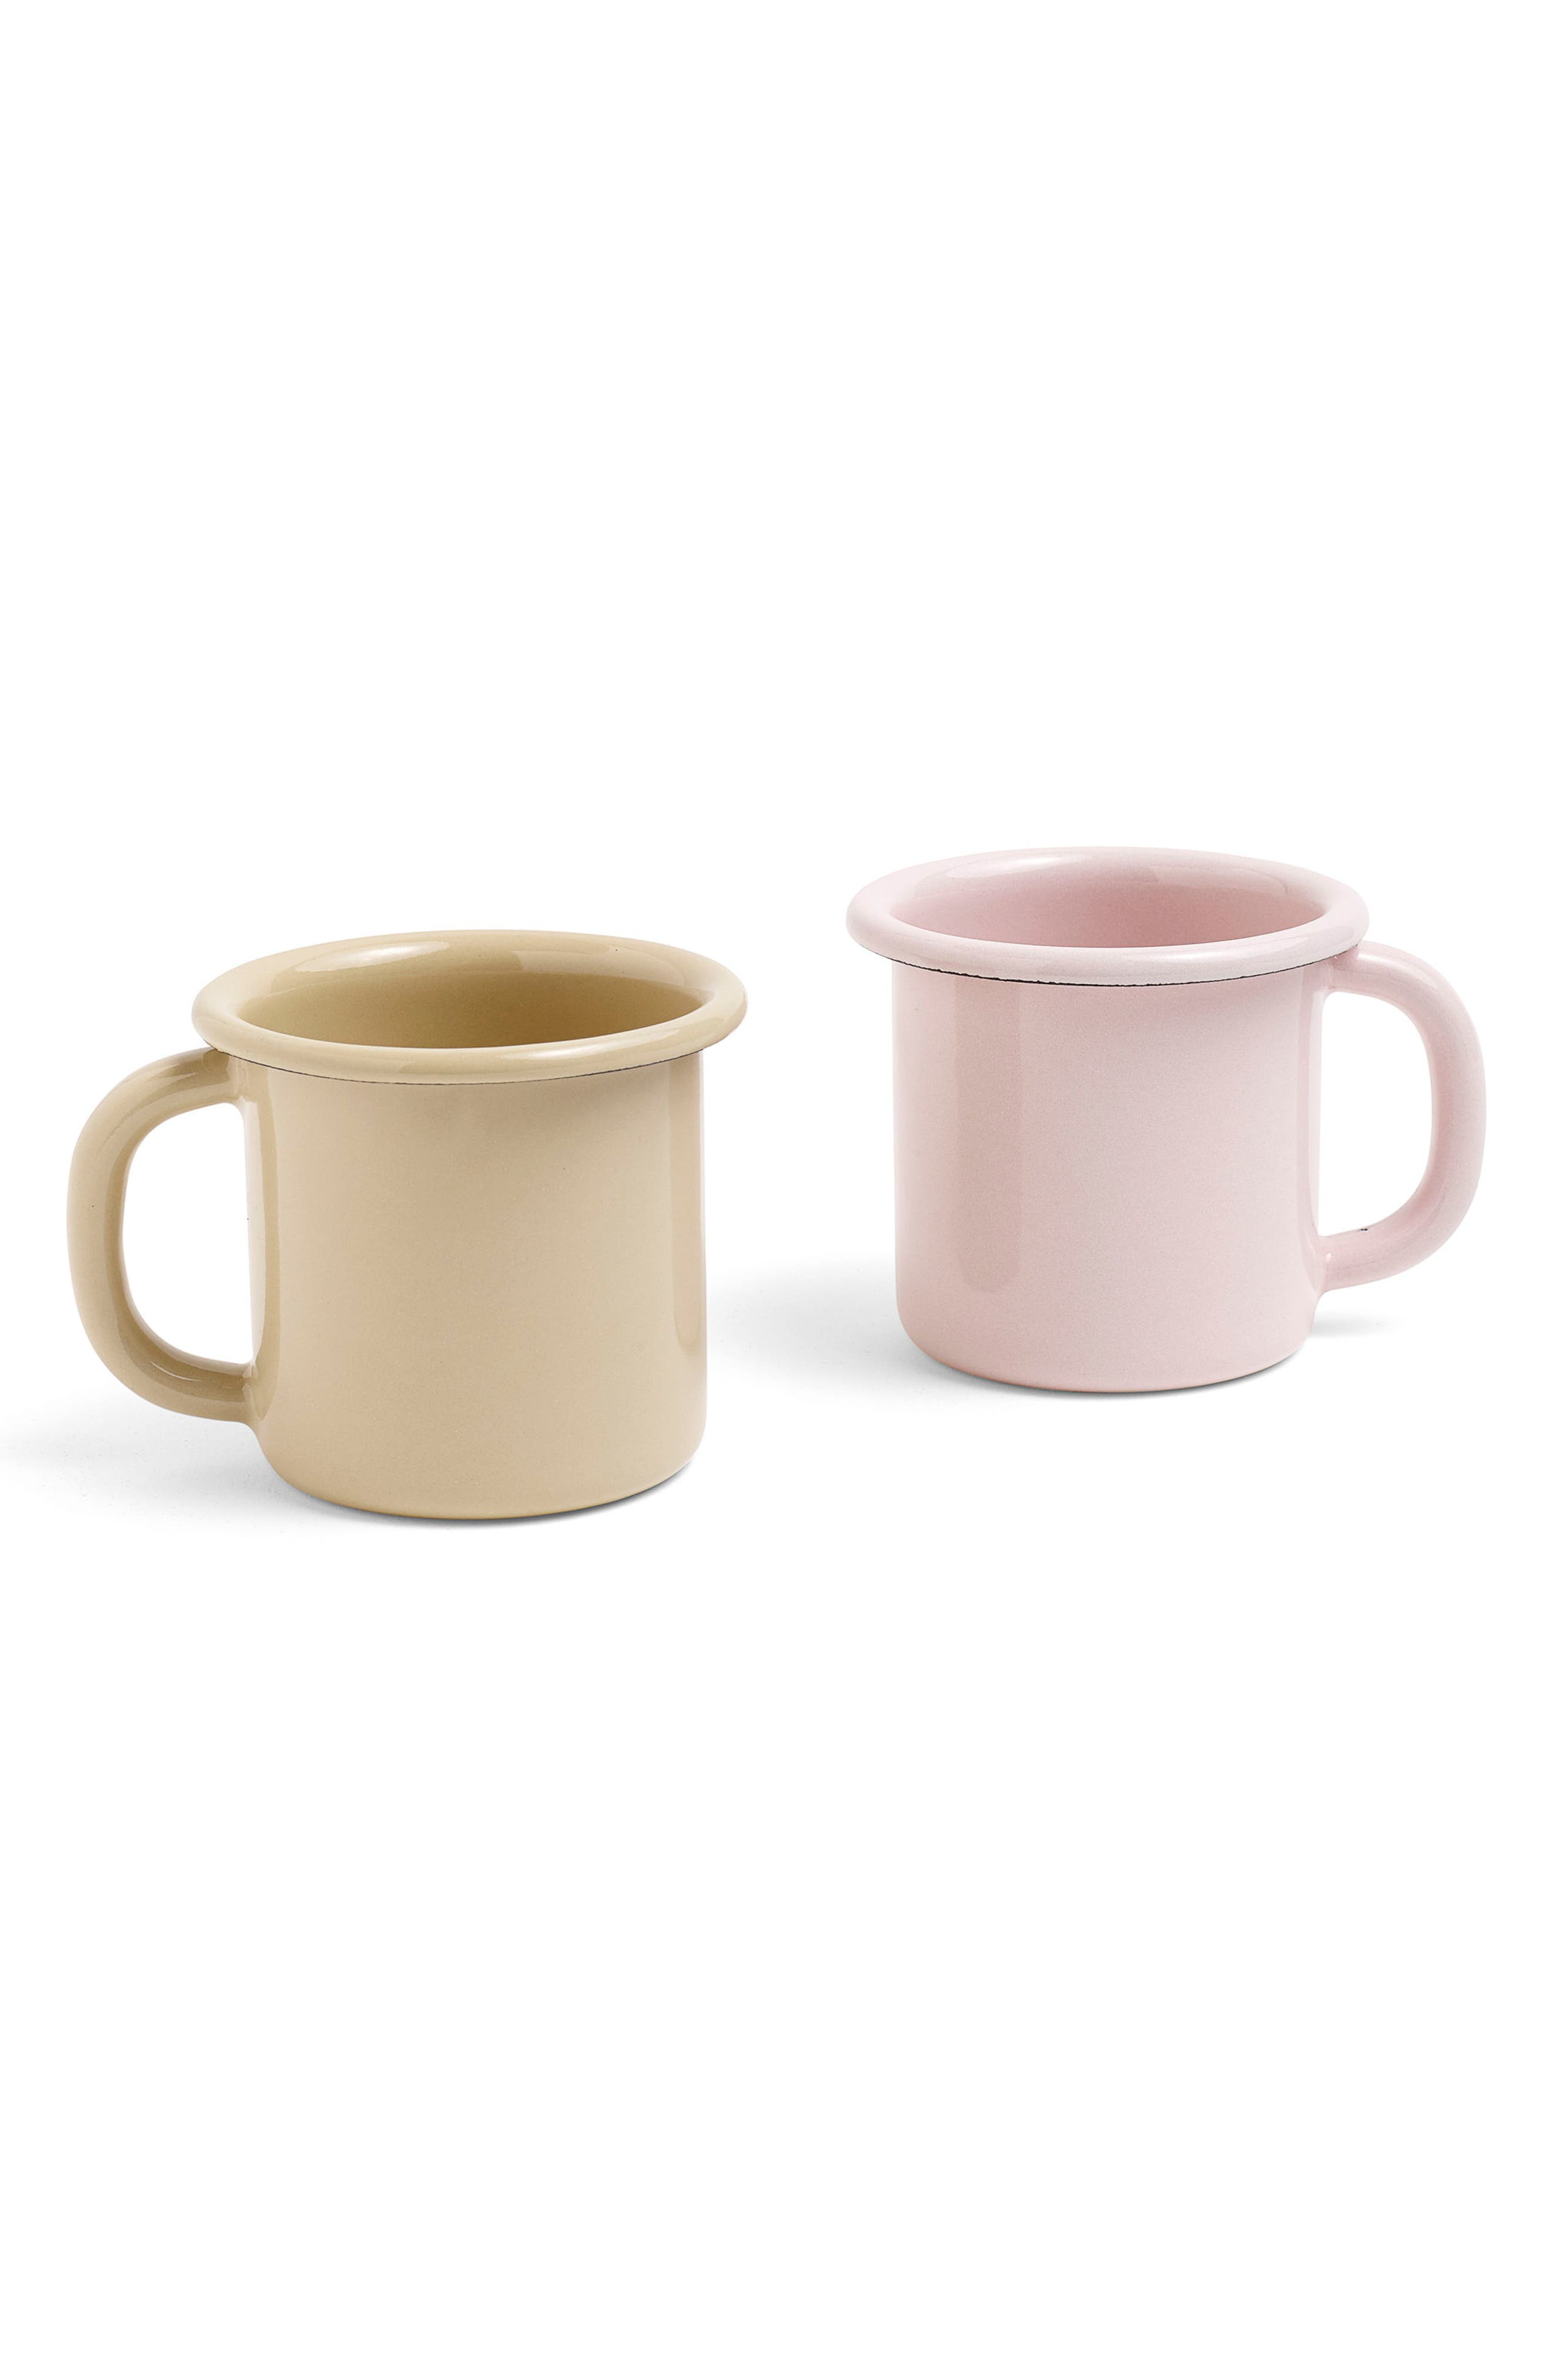 Enamel Mug,                             Alternate thumbnail 4, color,                             200